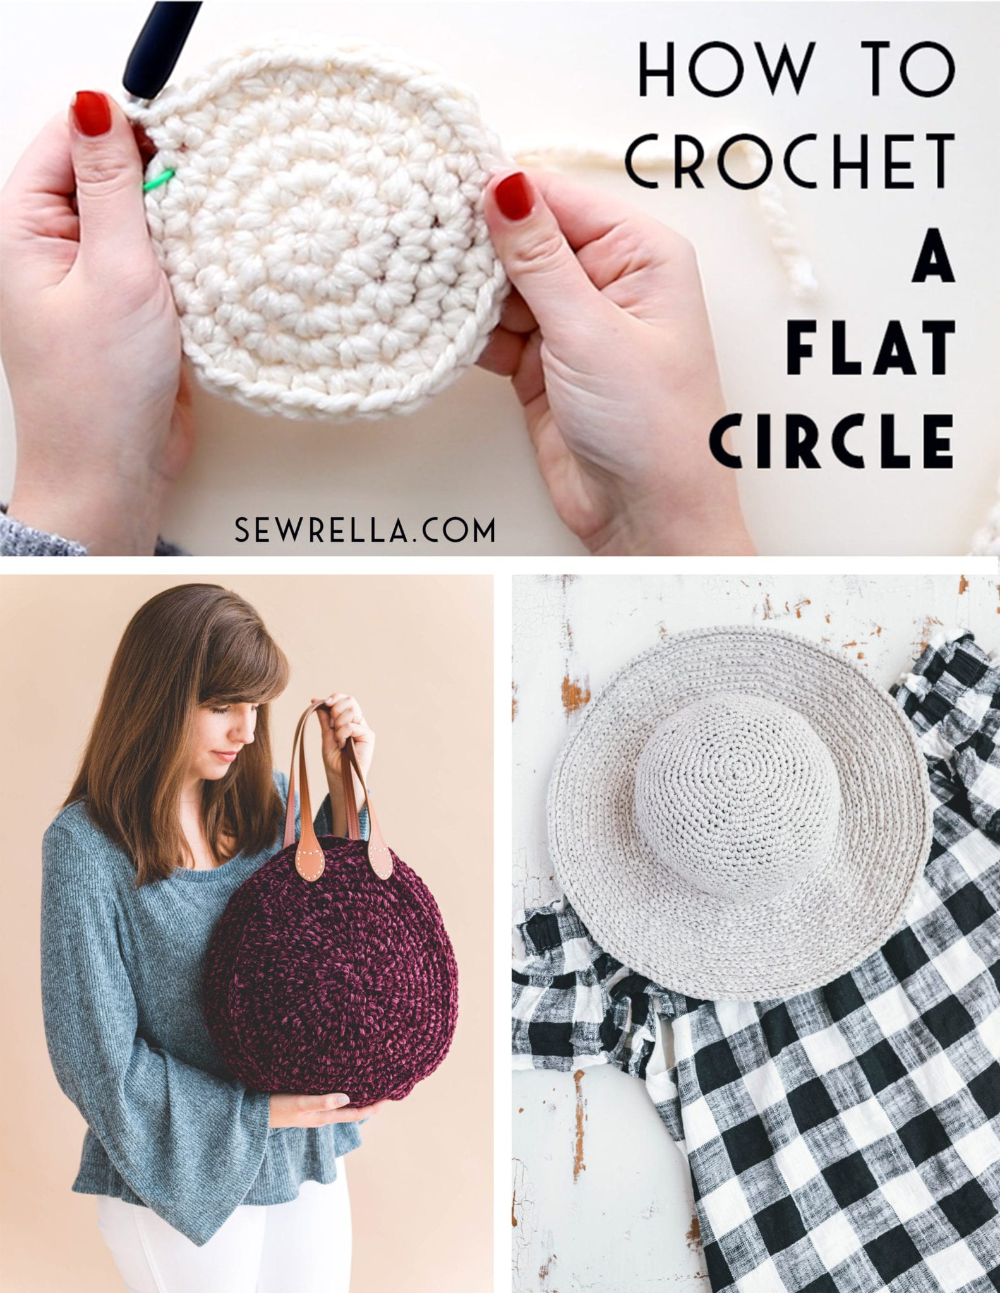 How To Crochet A Flat Circle Free Pattern And Video Tutorial Crochet Circles Crochet Square Patterns Crochet Rug Patterns